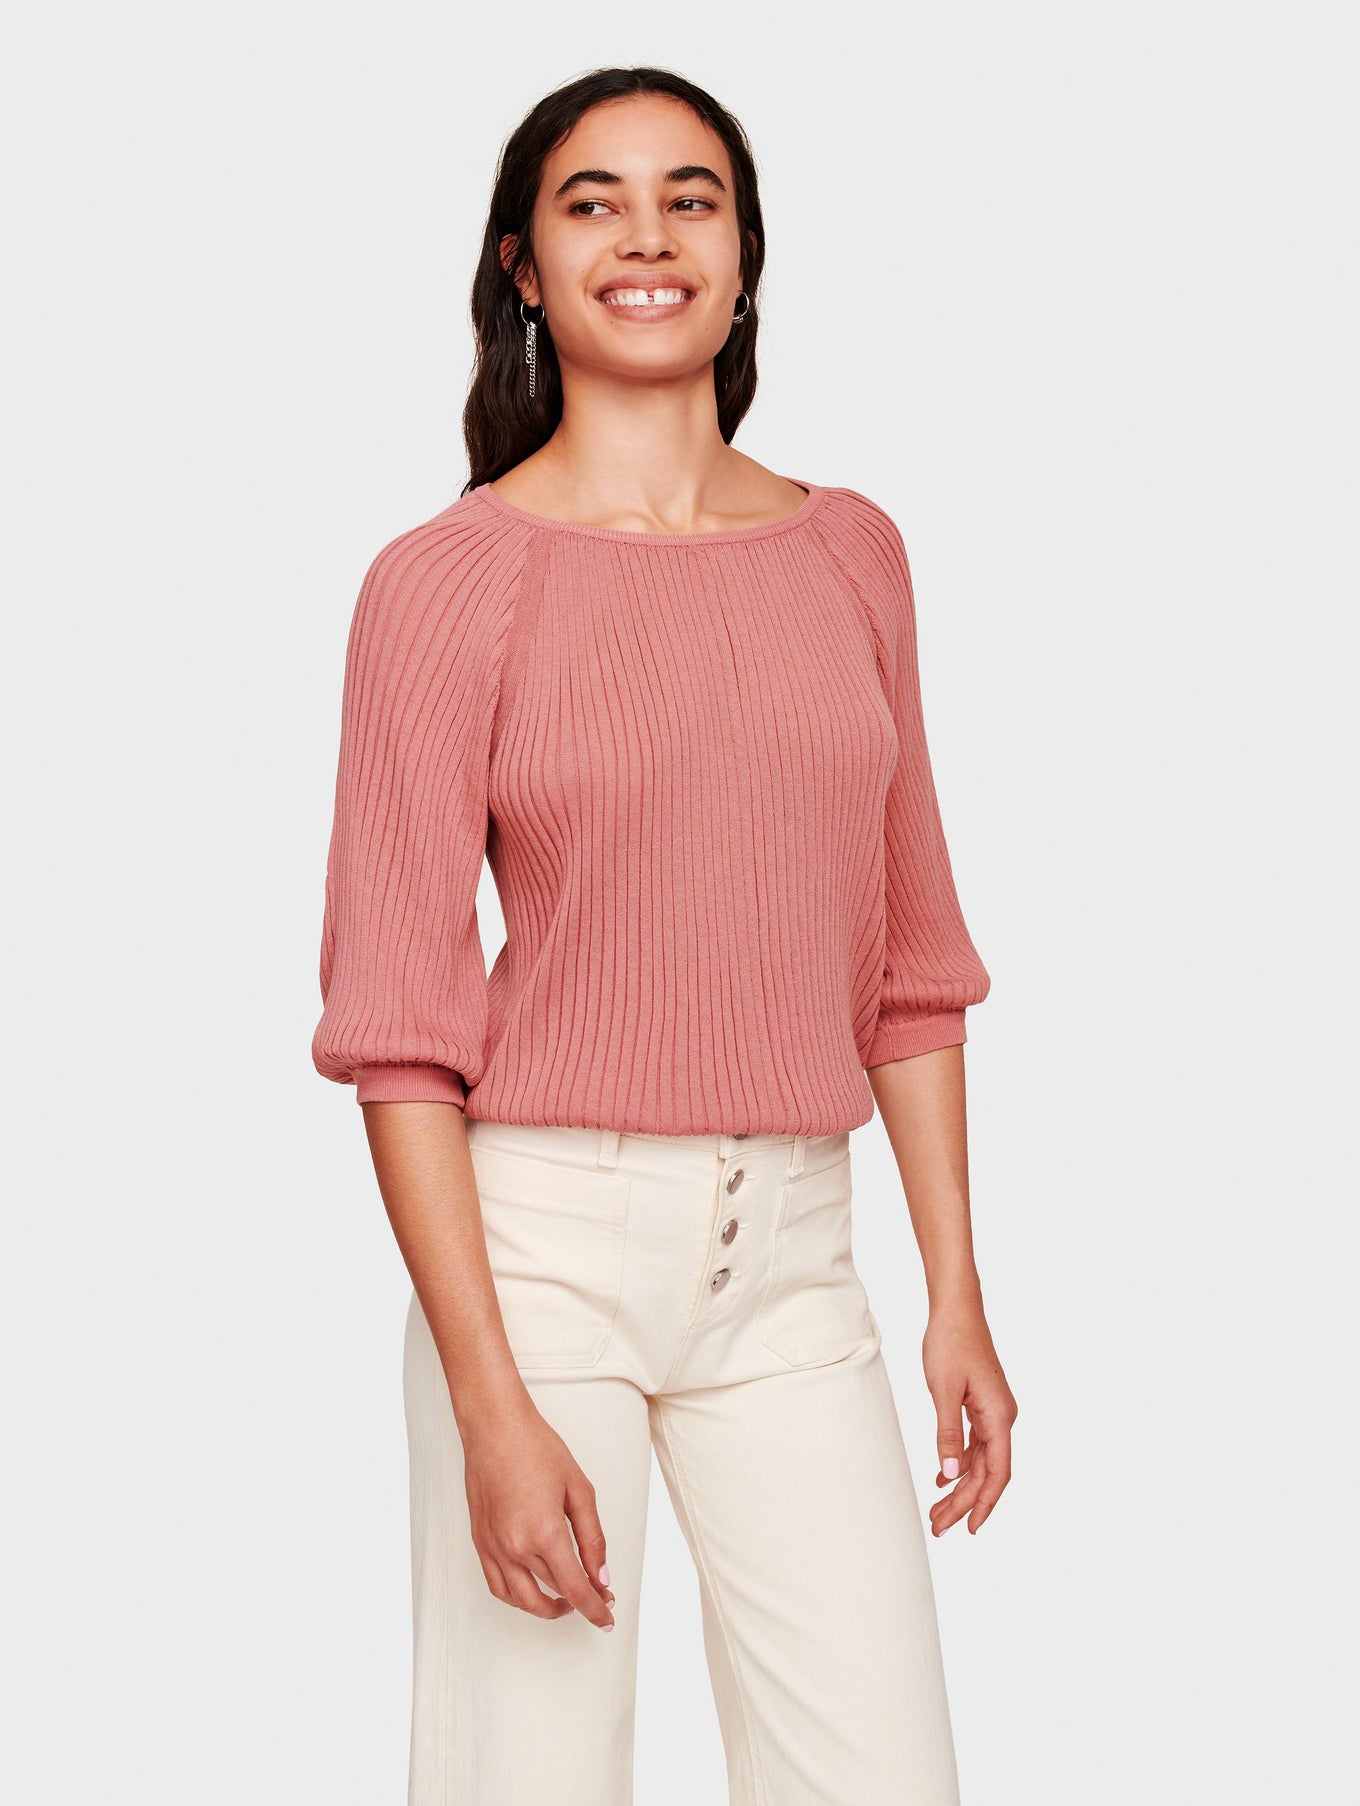 Tissue Weight Cotton Ribbed Balloon Sleeve Top - Terracotta Rose - Image 2